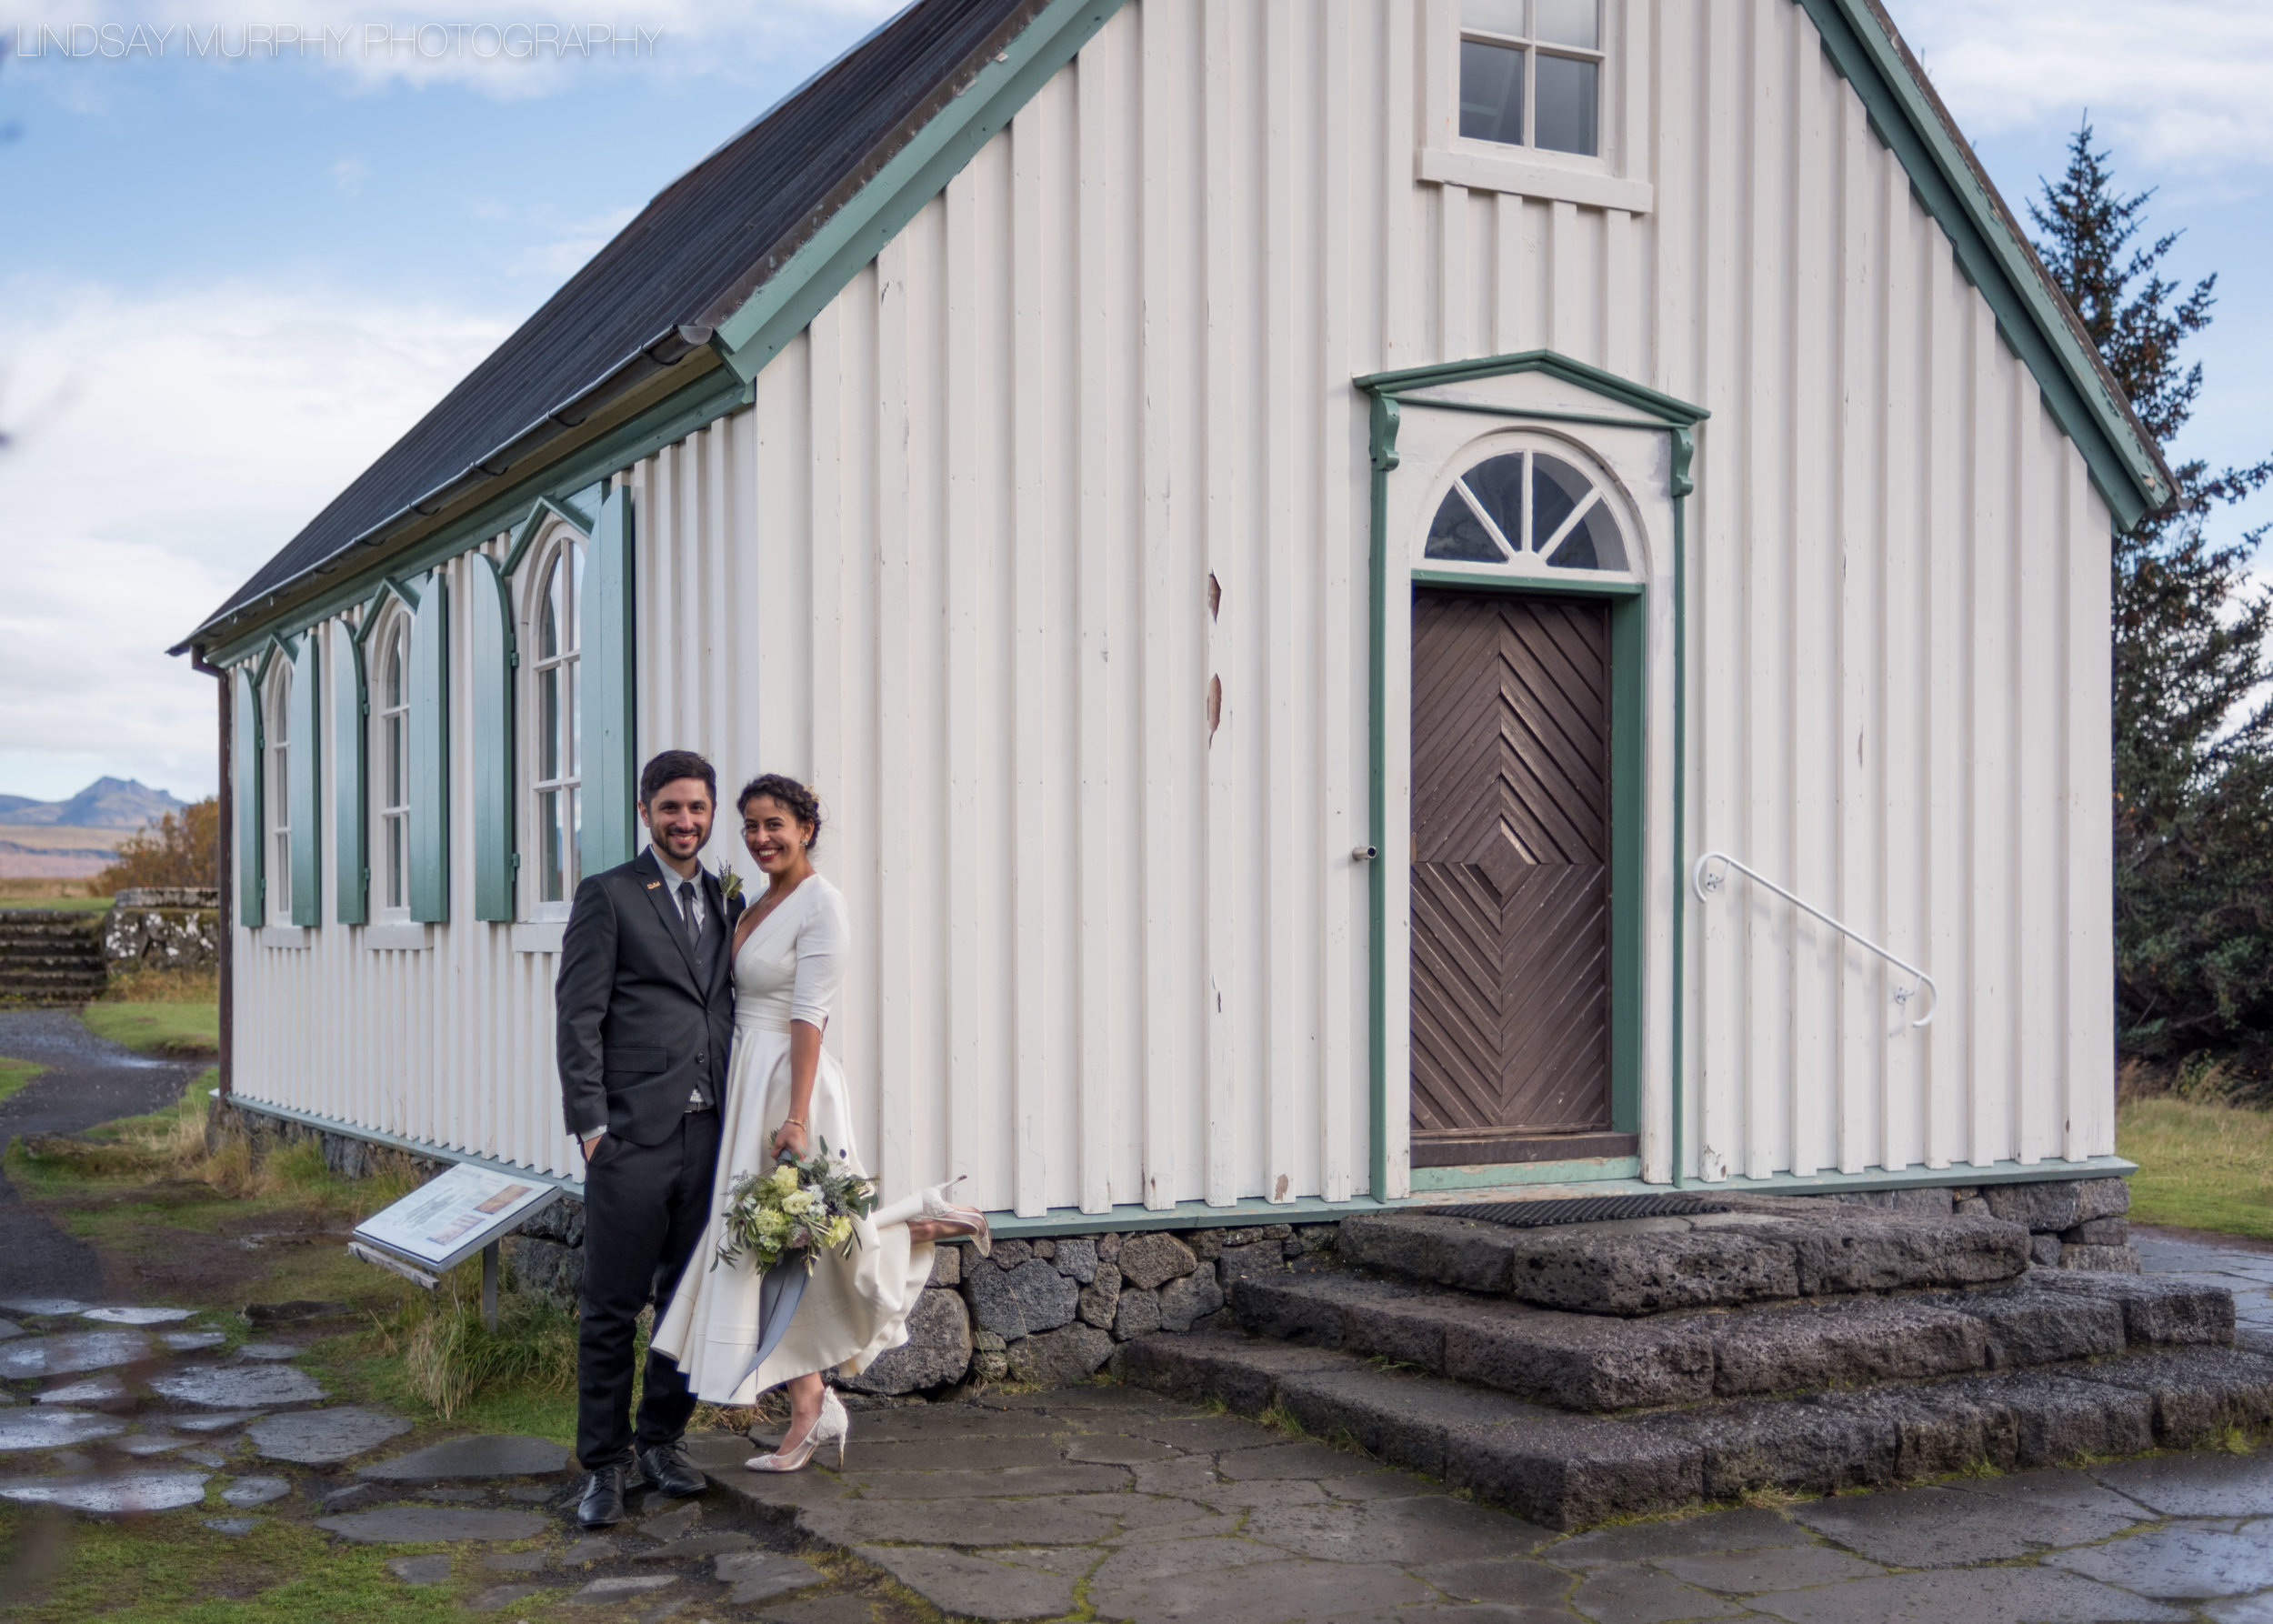 Destination_Iceland_Adventure_Wedding-315.jpg